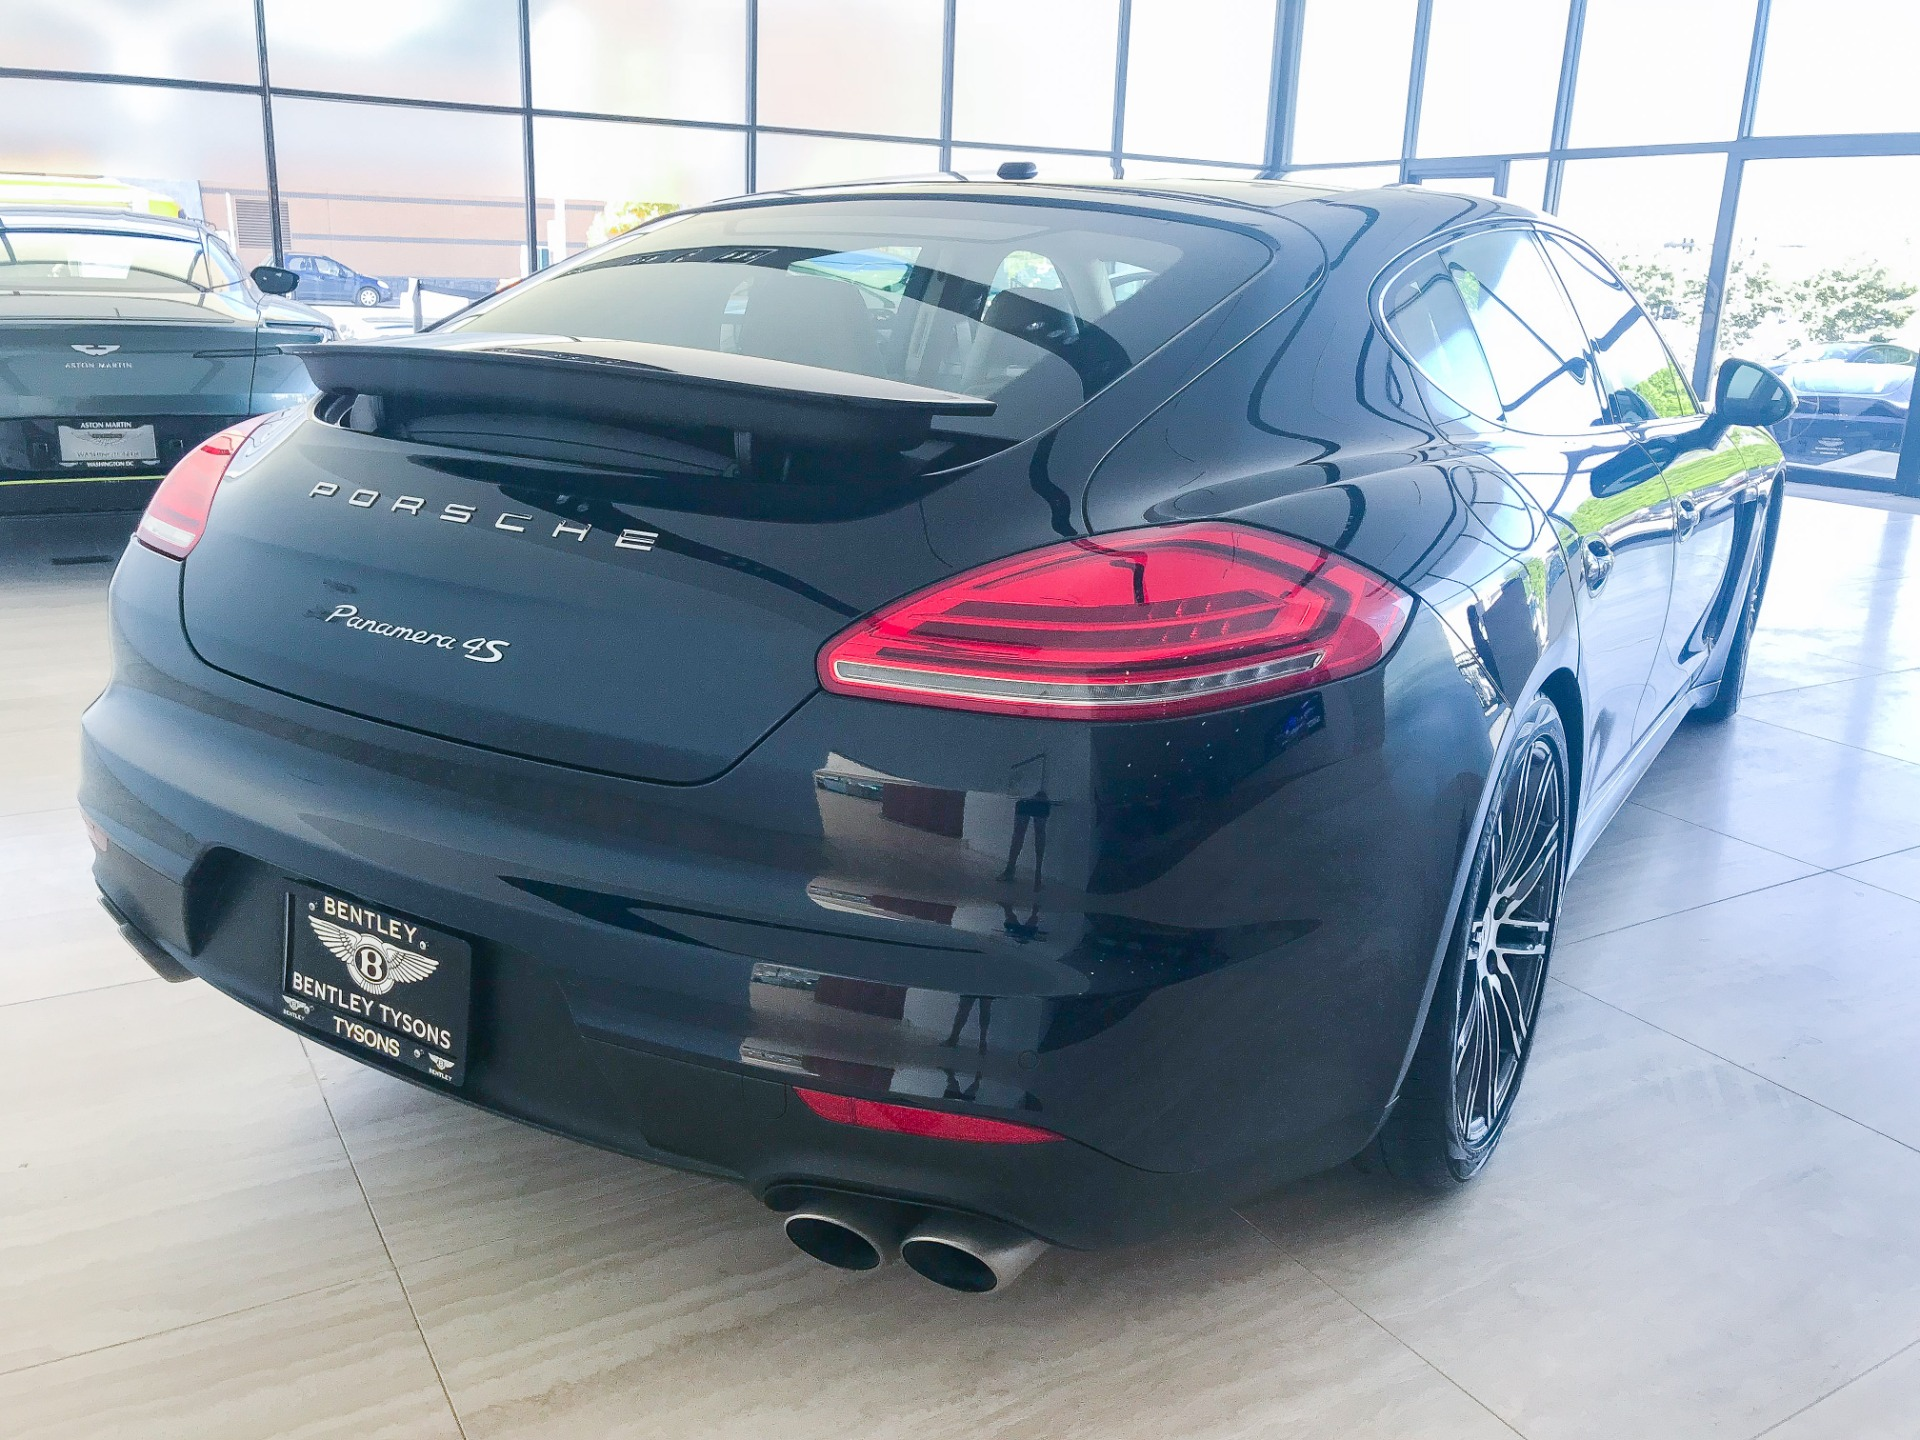 2016 Porsche Panamera 4s Stock 9n024344a For Sale Near Vienna Va Va Porsche Dealer For Sale In Vienna Va 9n024344a Exclusive Automotive Group